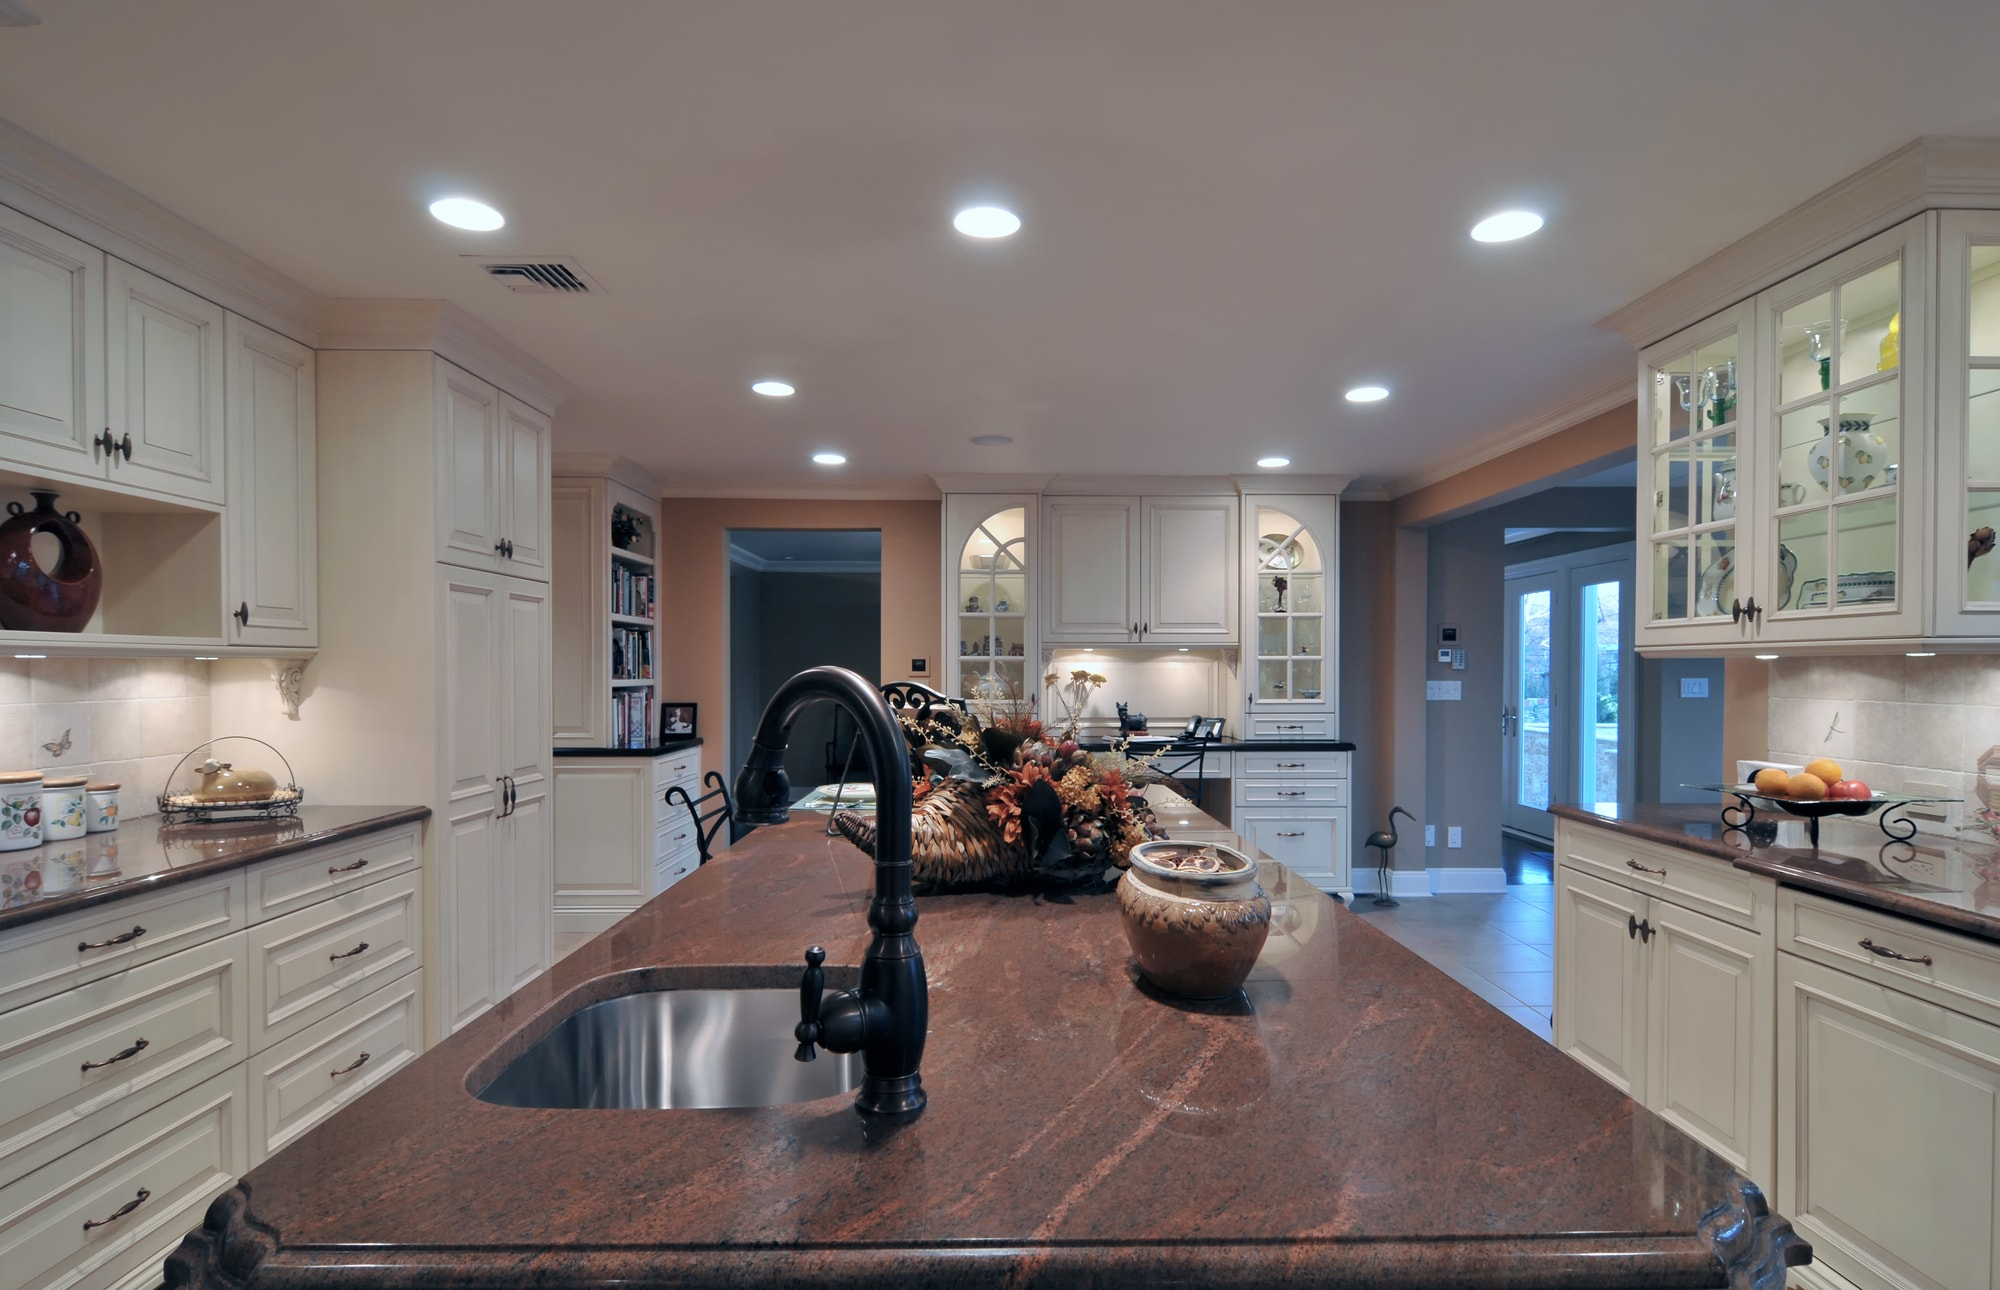 Traditional style kitchen with granite countertop and single hand faucet